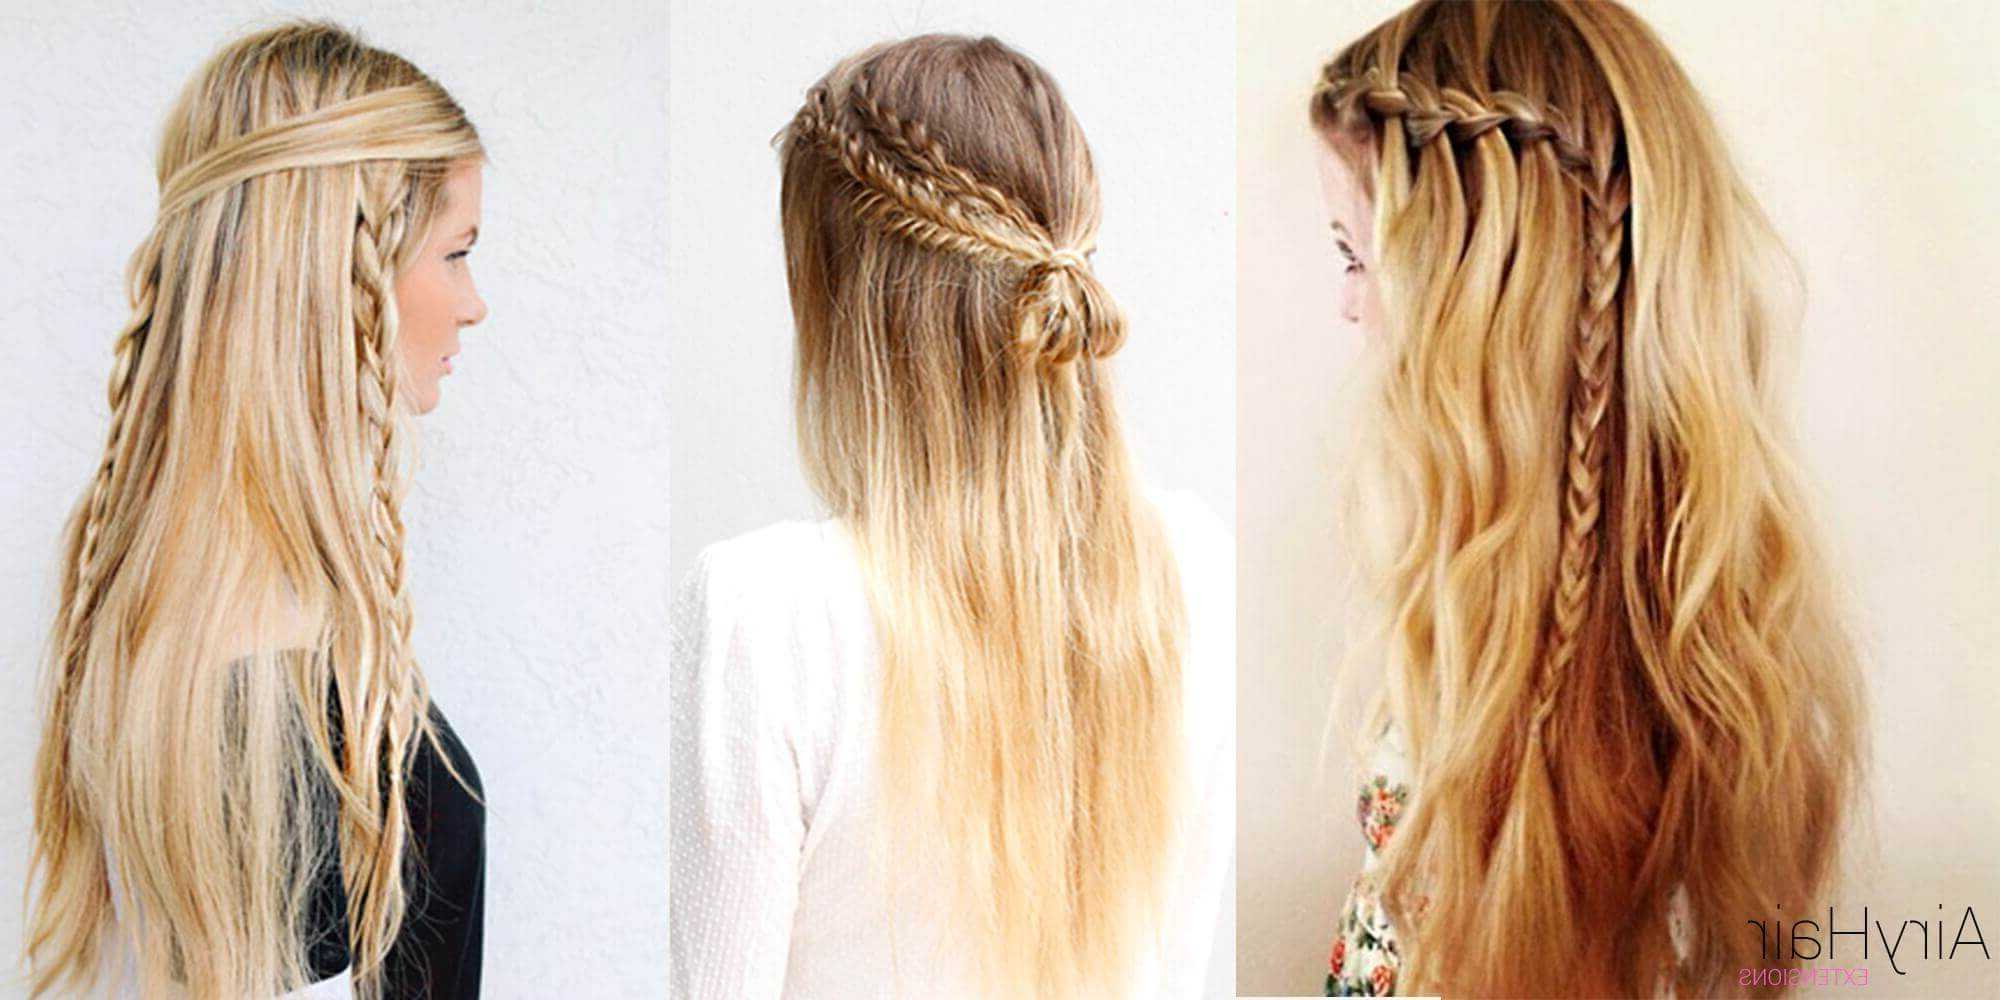 10 Best Chic And Creative Boho Hairstyles Within Favorite Boho Medium Hairstyles (View 11 of 20)